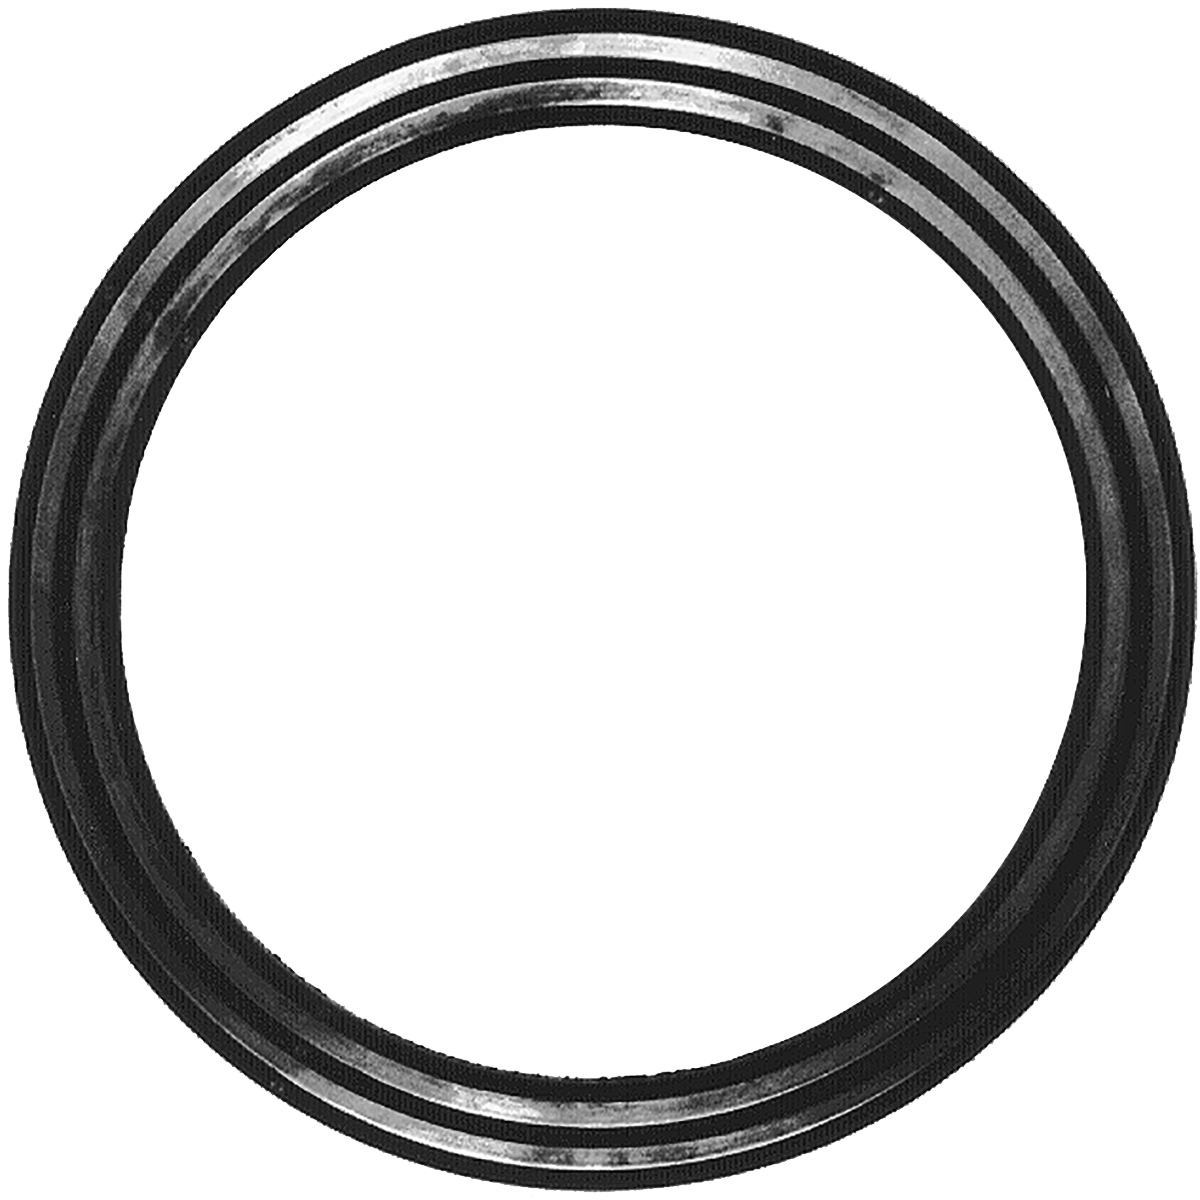 FLANGE GASKETS - Threaded flange gaskets and tapping flange gaskets